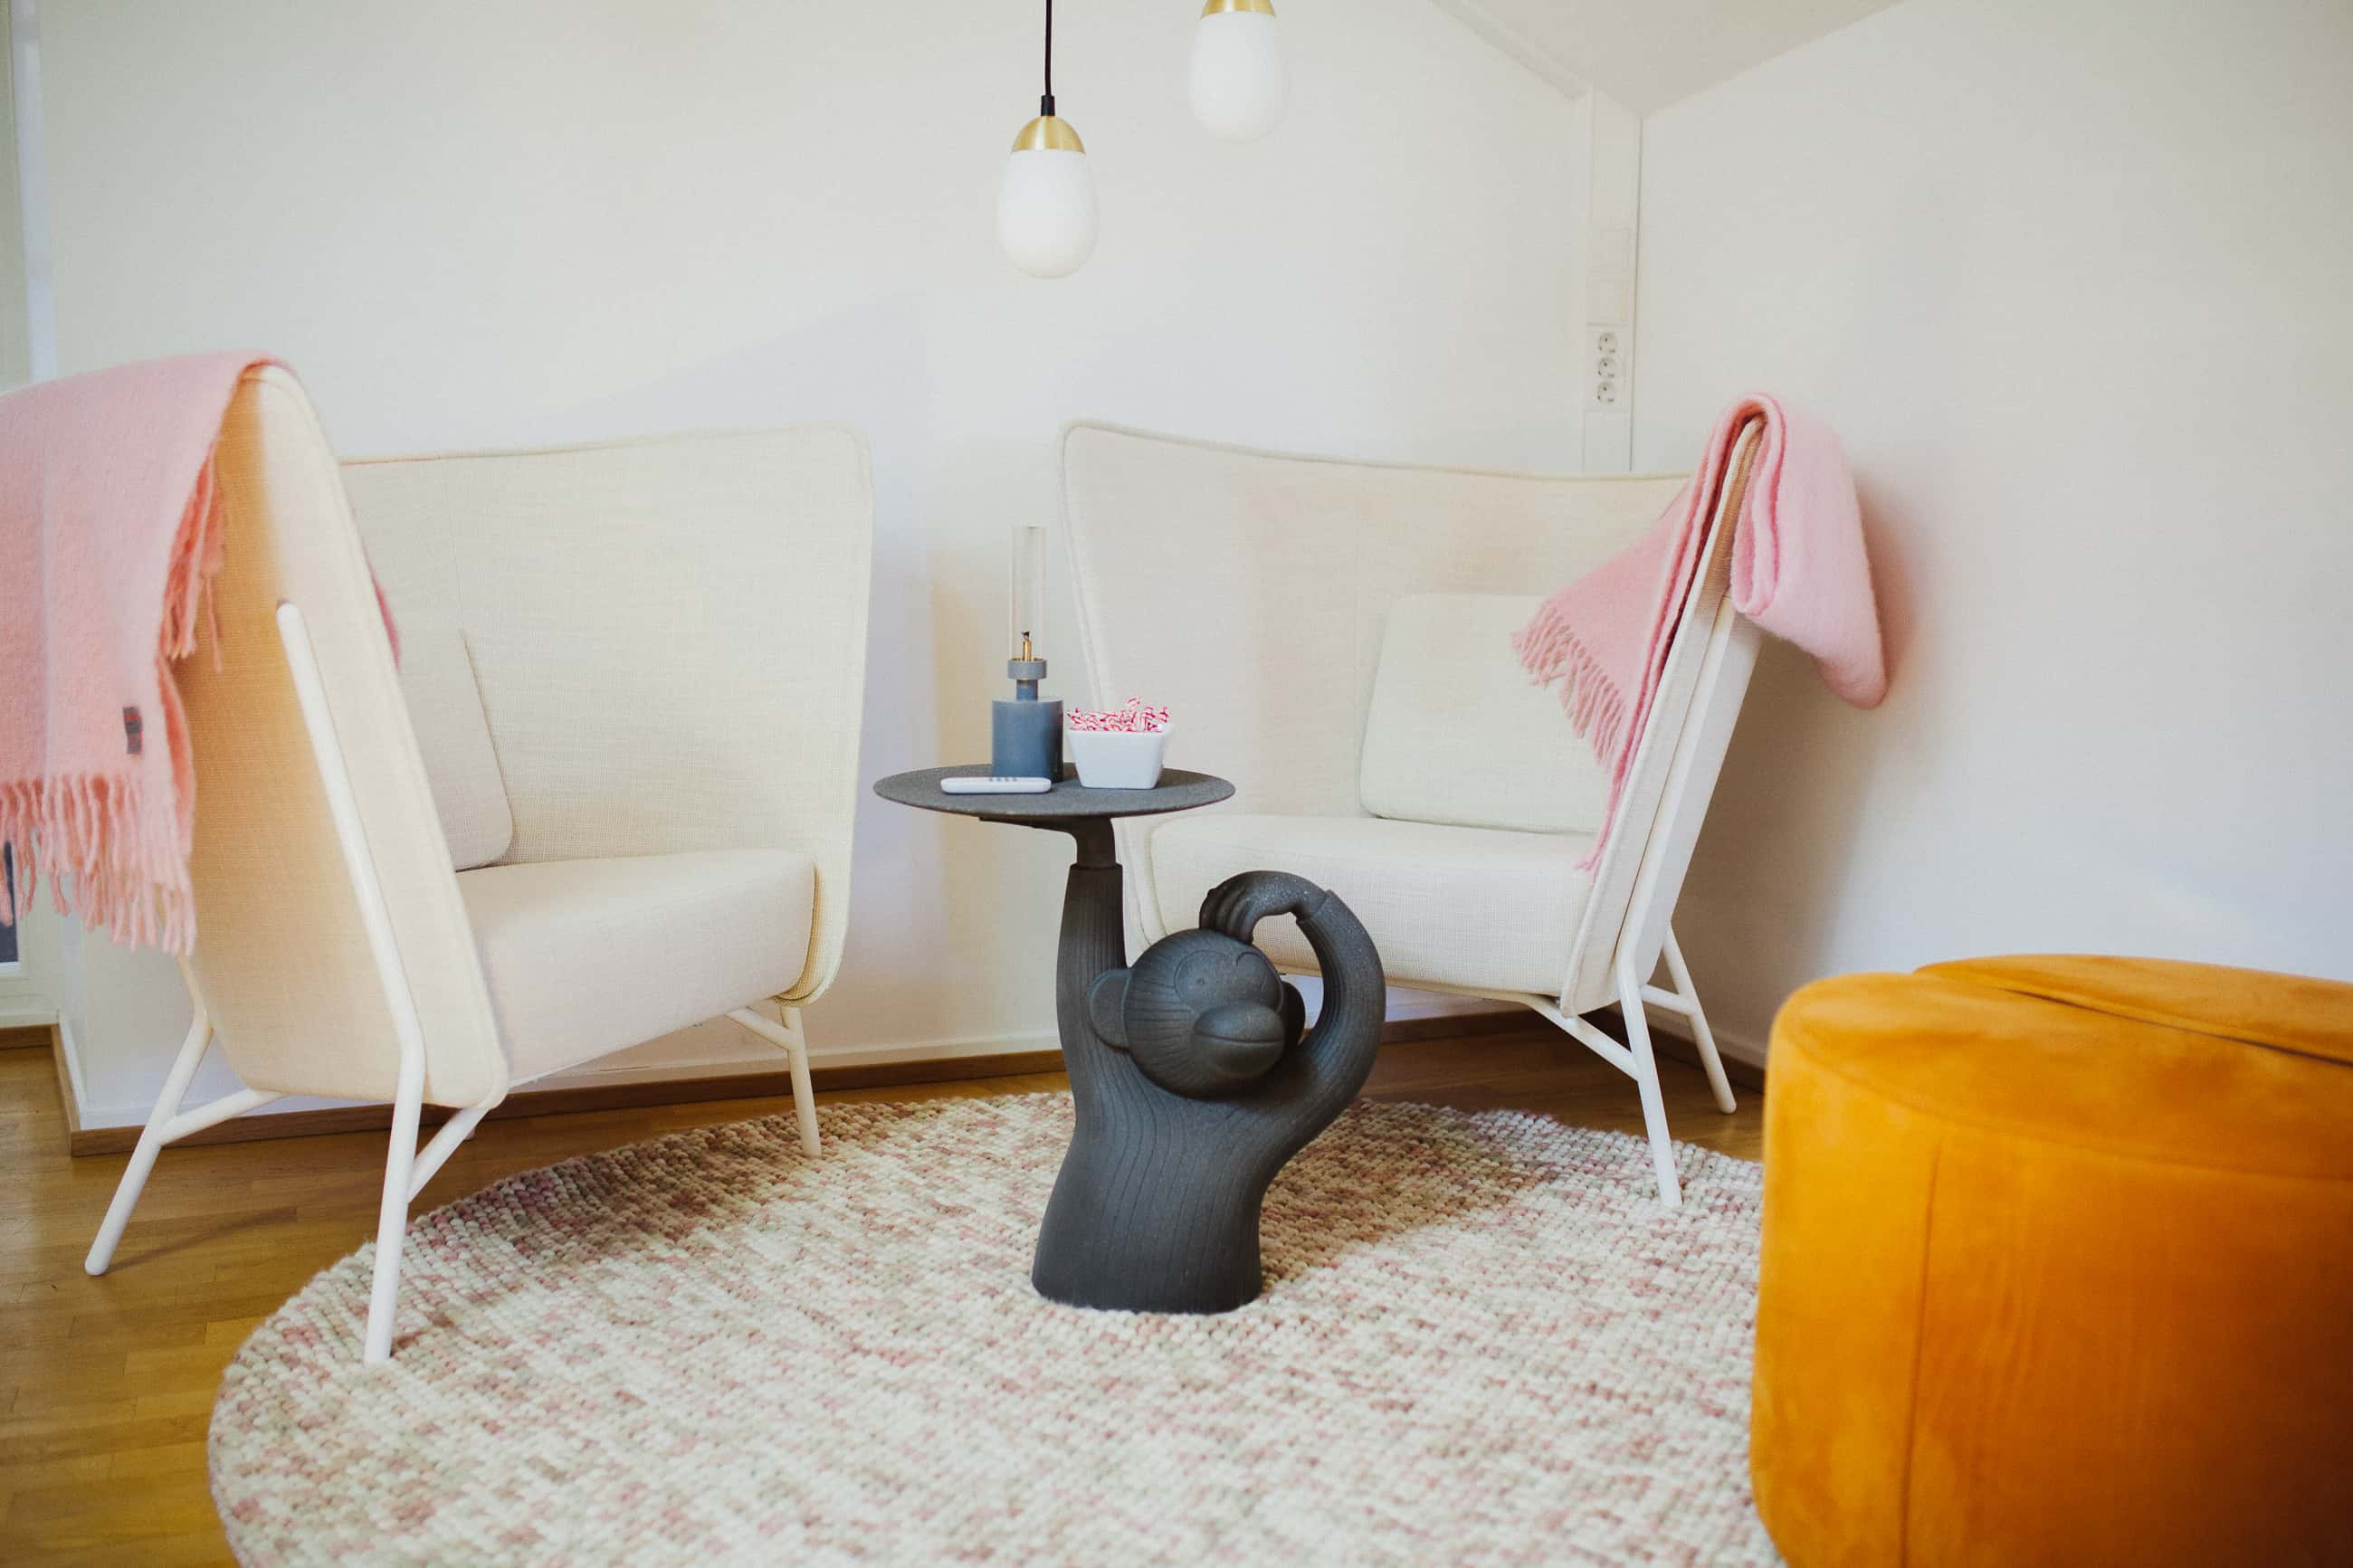 A lounge area with two chairs, an orange stool and a coffee table resembling a monkey.